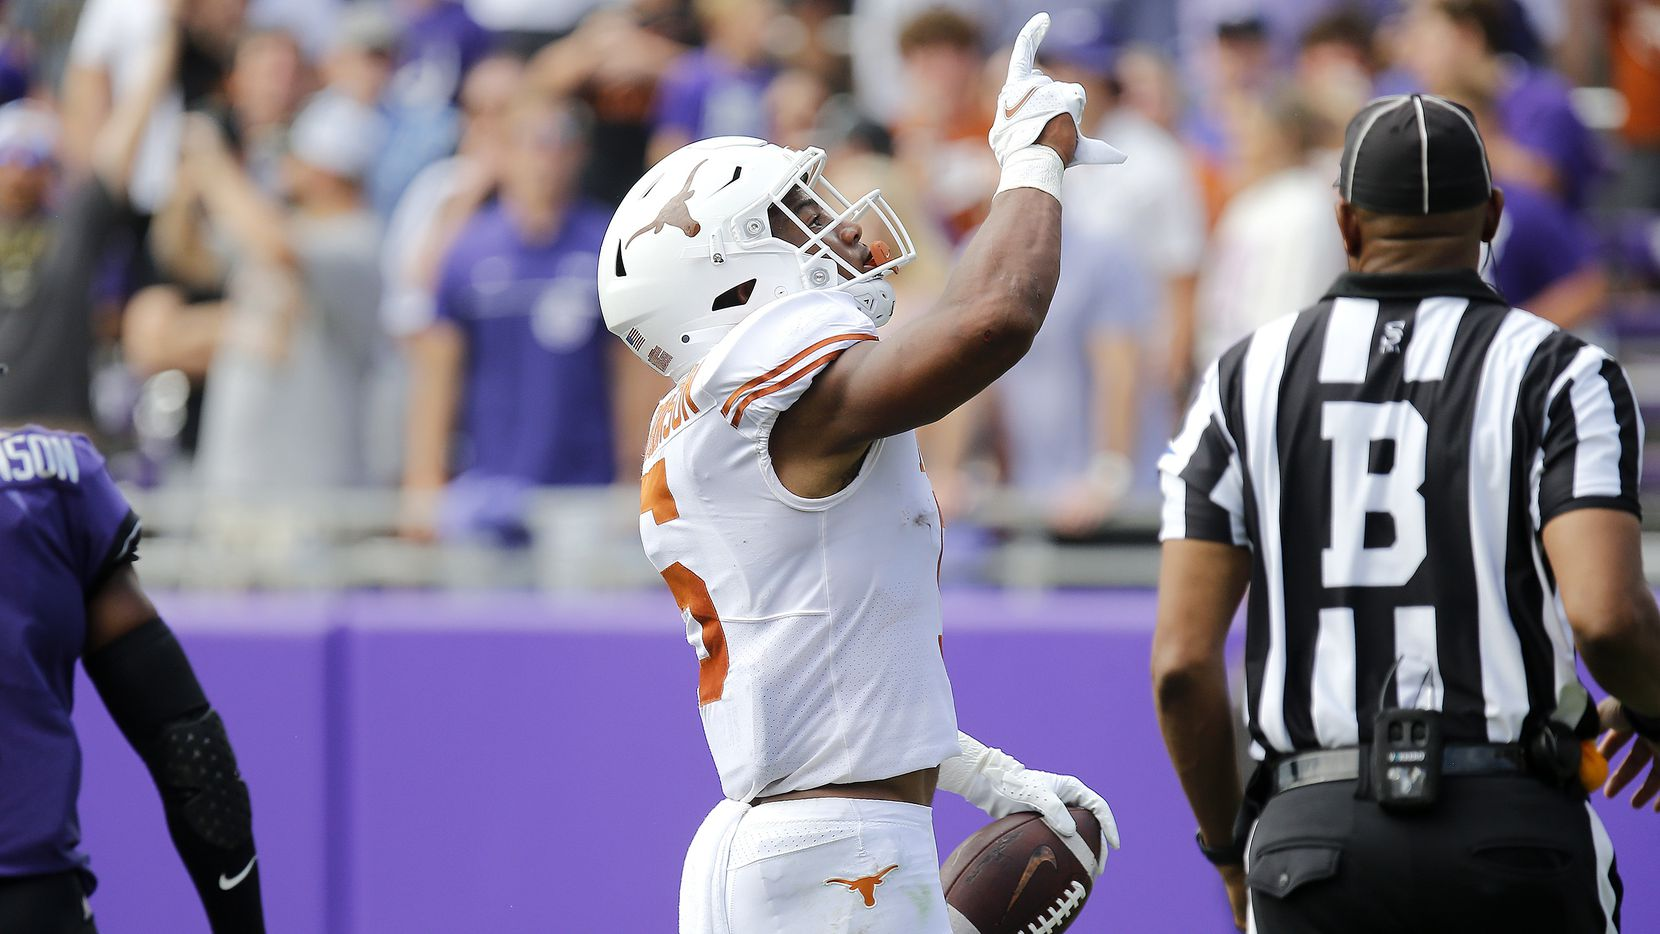 Texas Longhorns running back Bijan Robinson (5) celebrates scoring a touchdown during the first half as the TCU Horned Frogs hosted the Texas Longhorns on Saturday, October 2, 2021, at Amon G Carter Stadium in Fort Worth. (Stewart F. House/Special Contributor)